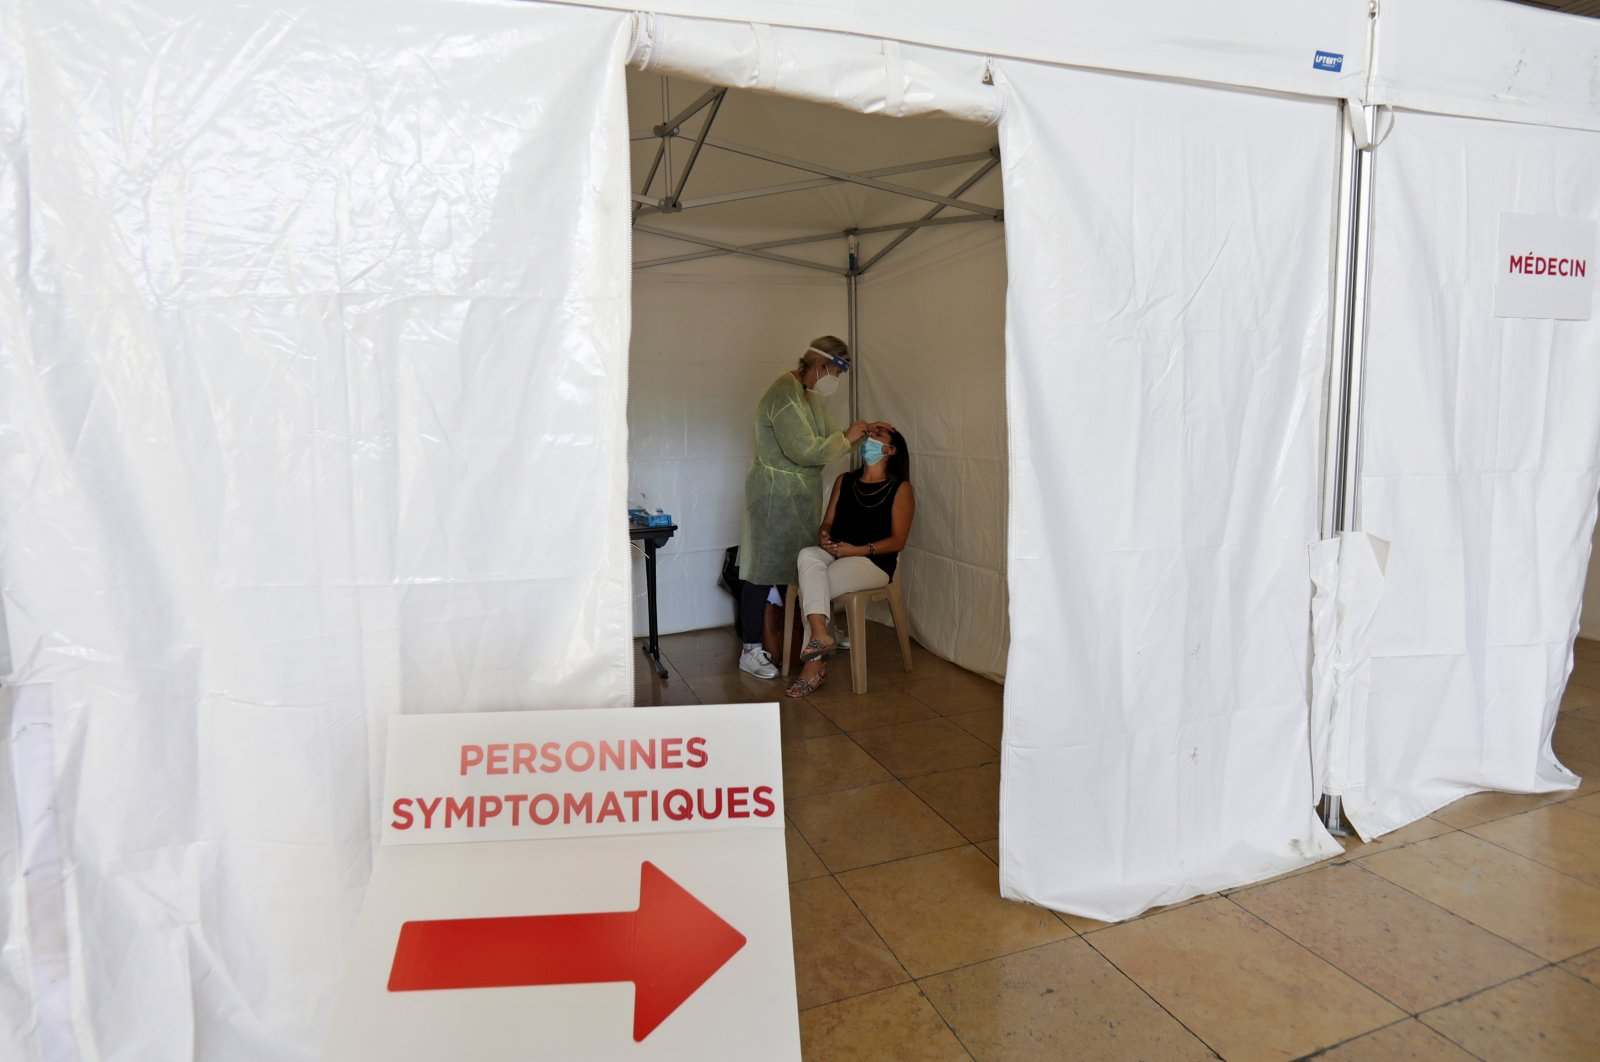 A medical worker, wearing protective suit and face mask, administers a nasal swab to a patient in a testing site, Nice, southern France Sept. 7, 2020. (REUTERS Photo)